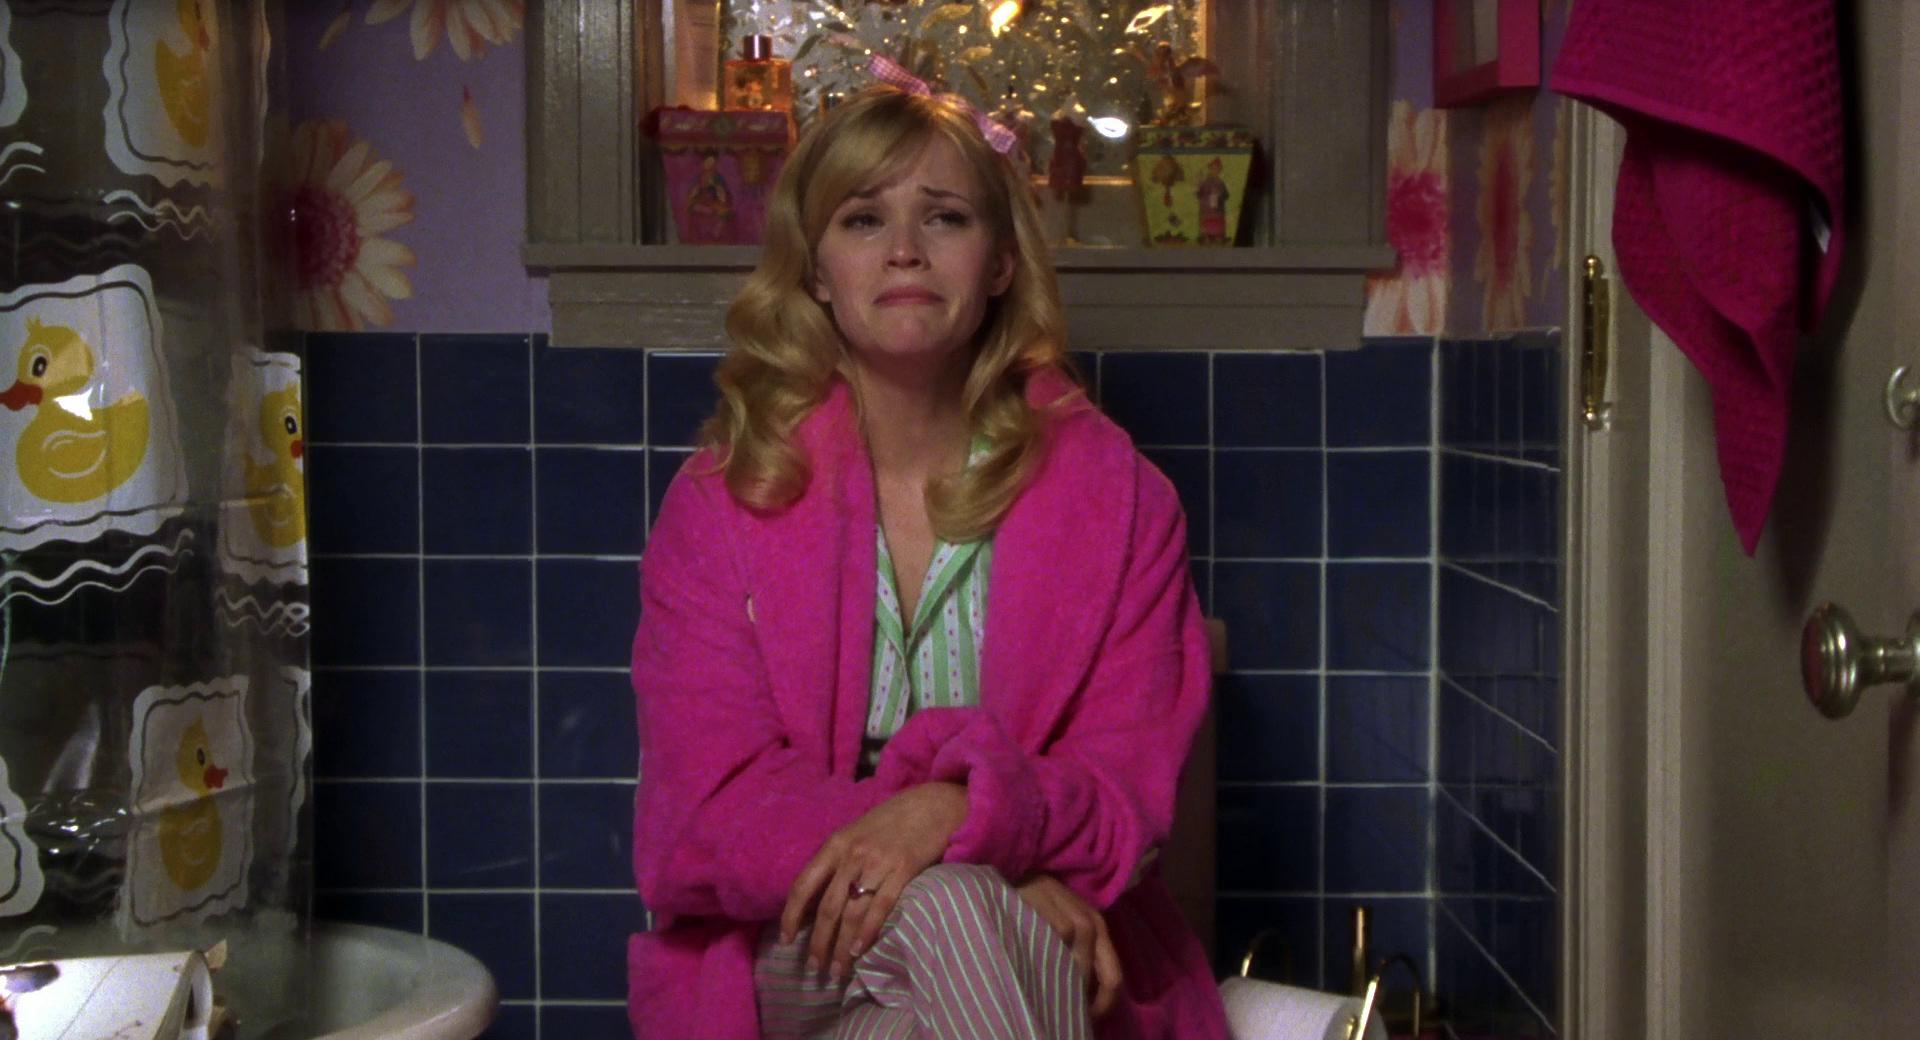 legally blonde 2 movie download in hd